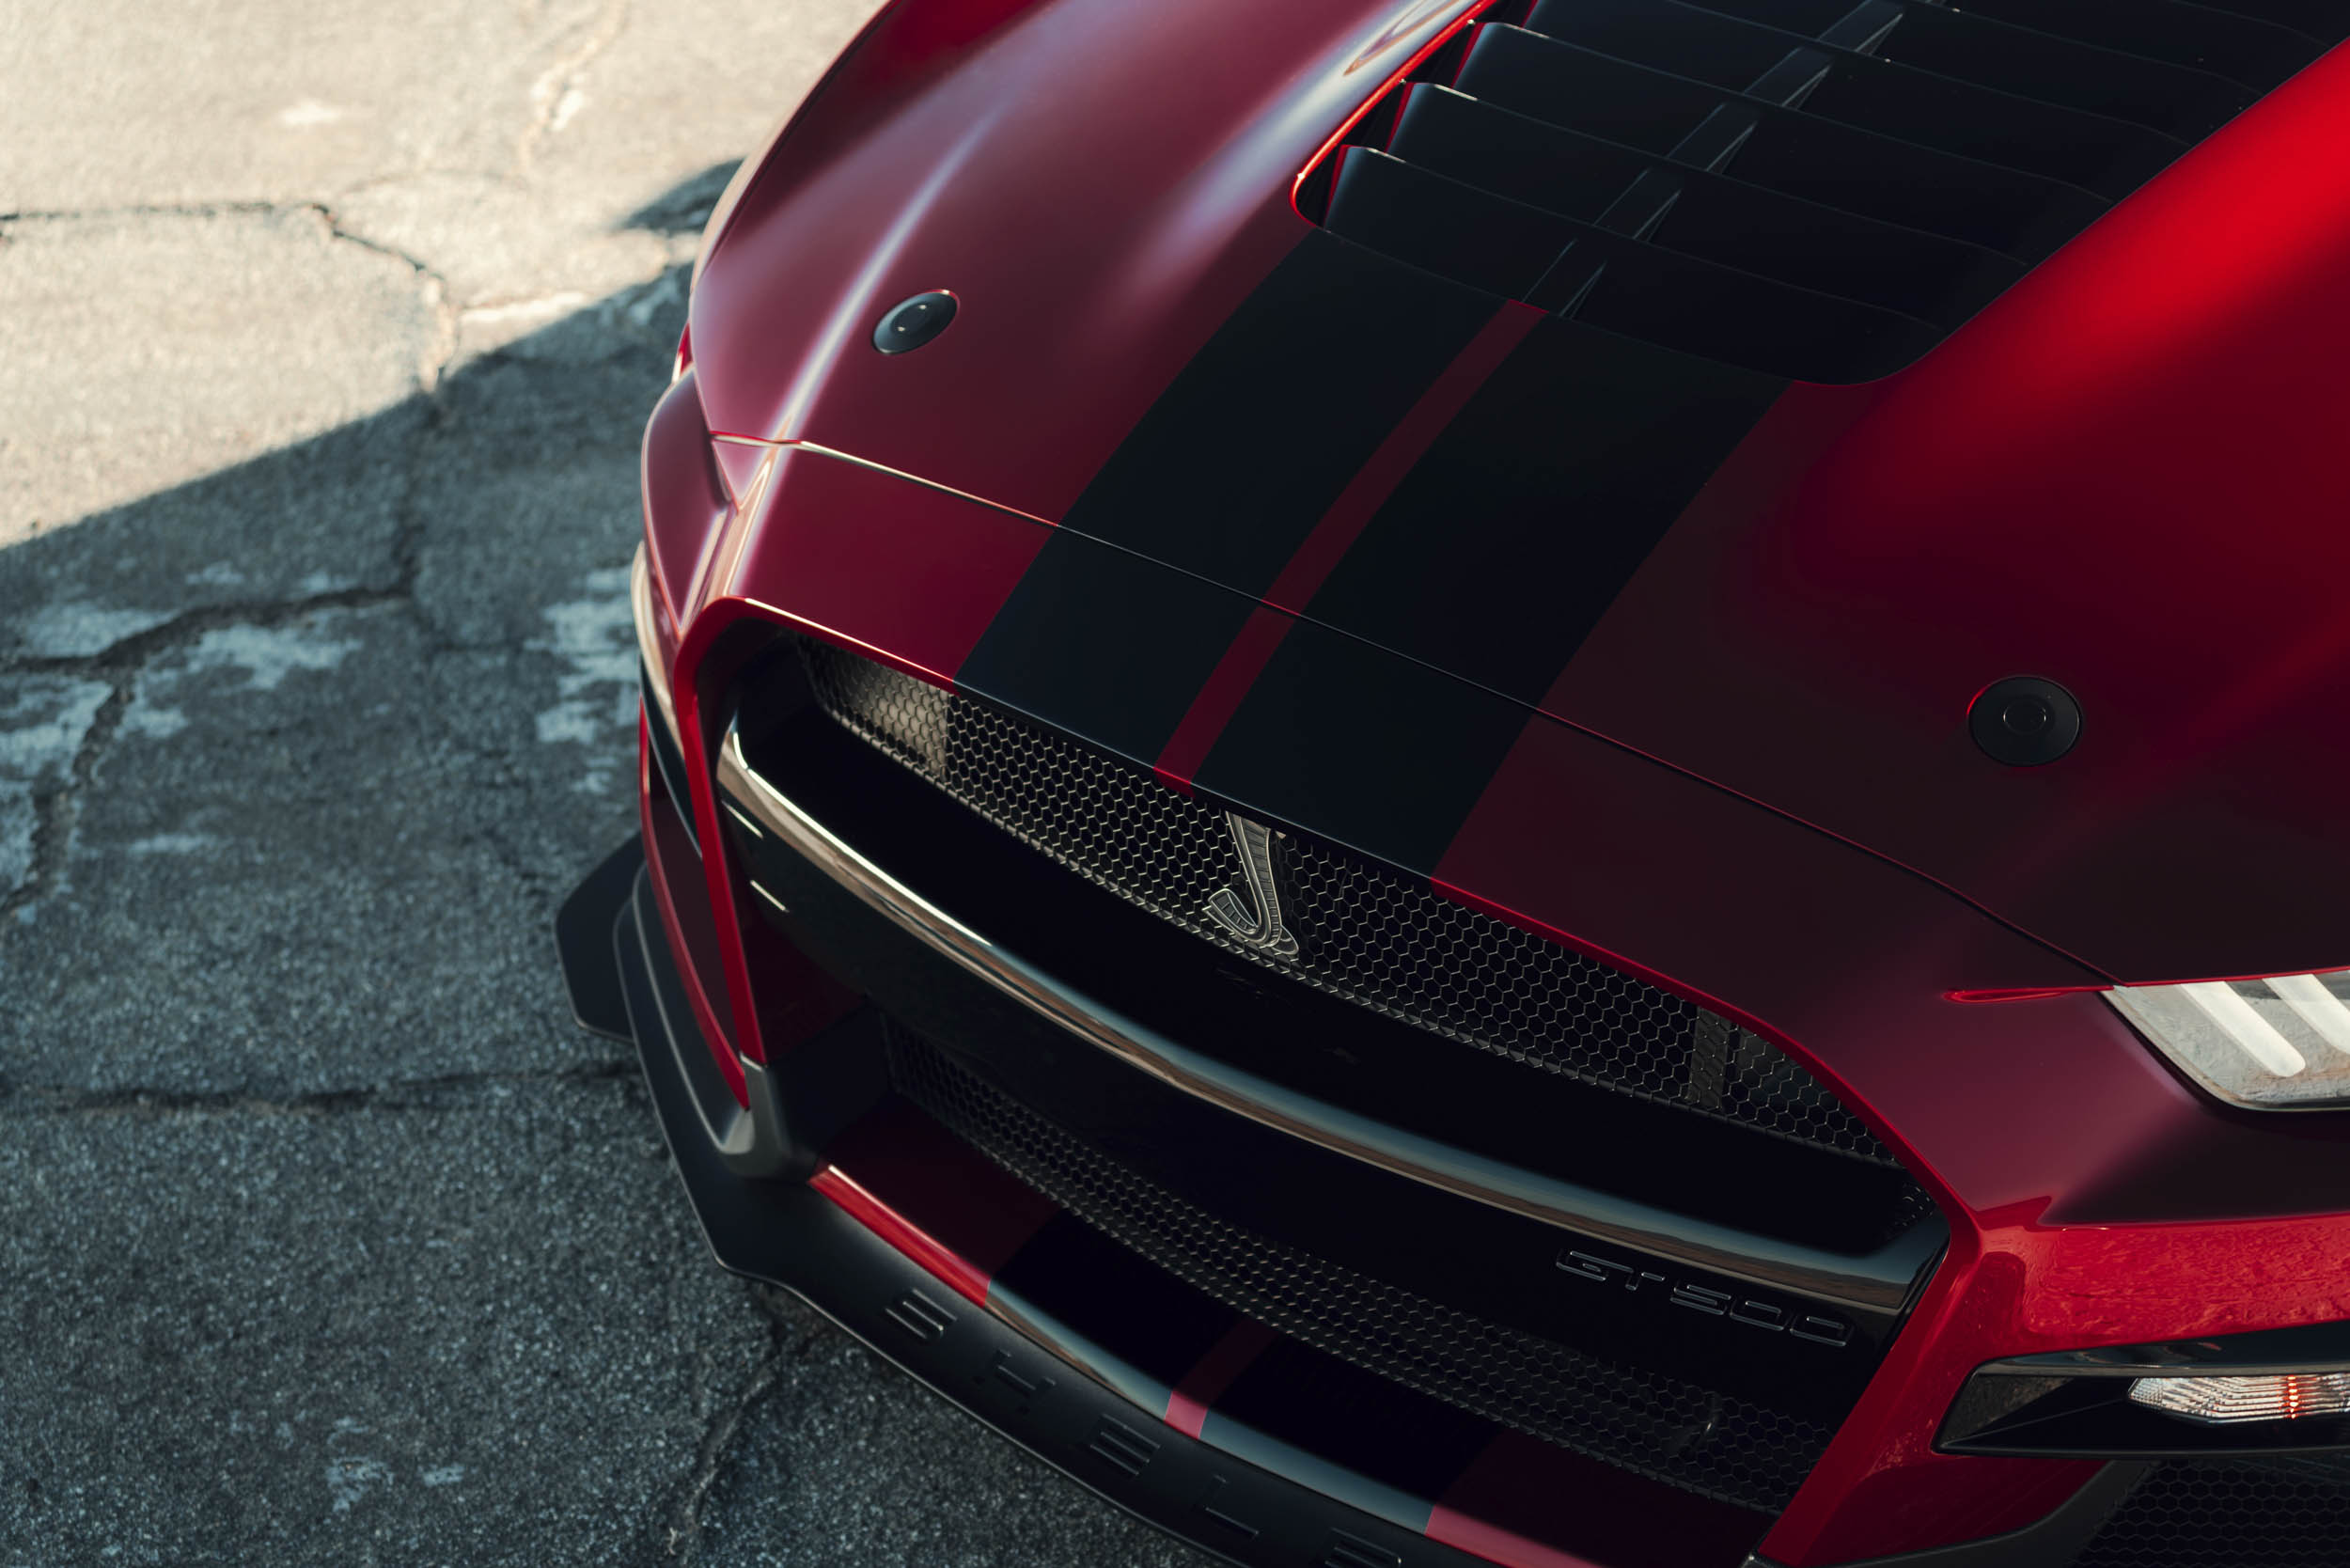 2020 Mustang Shelby GT500 grille snake badge